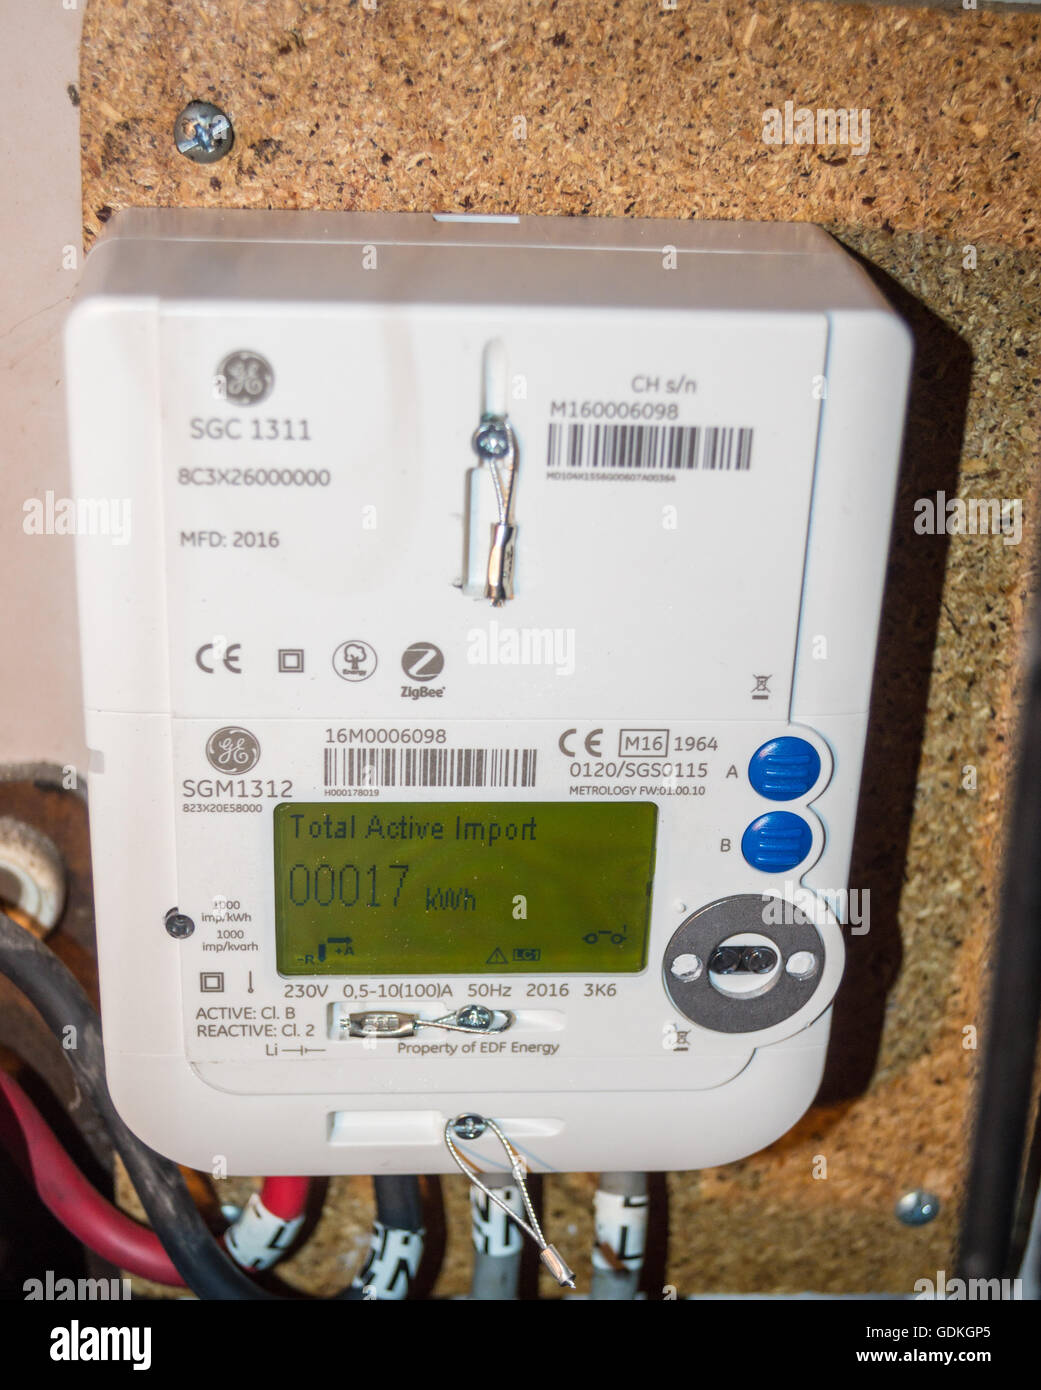 Smart Electric Meter Reading : A newly installed edf ge sgm lcd display smart